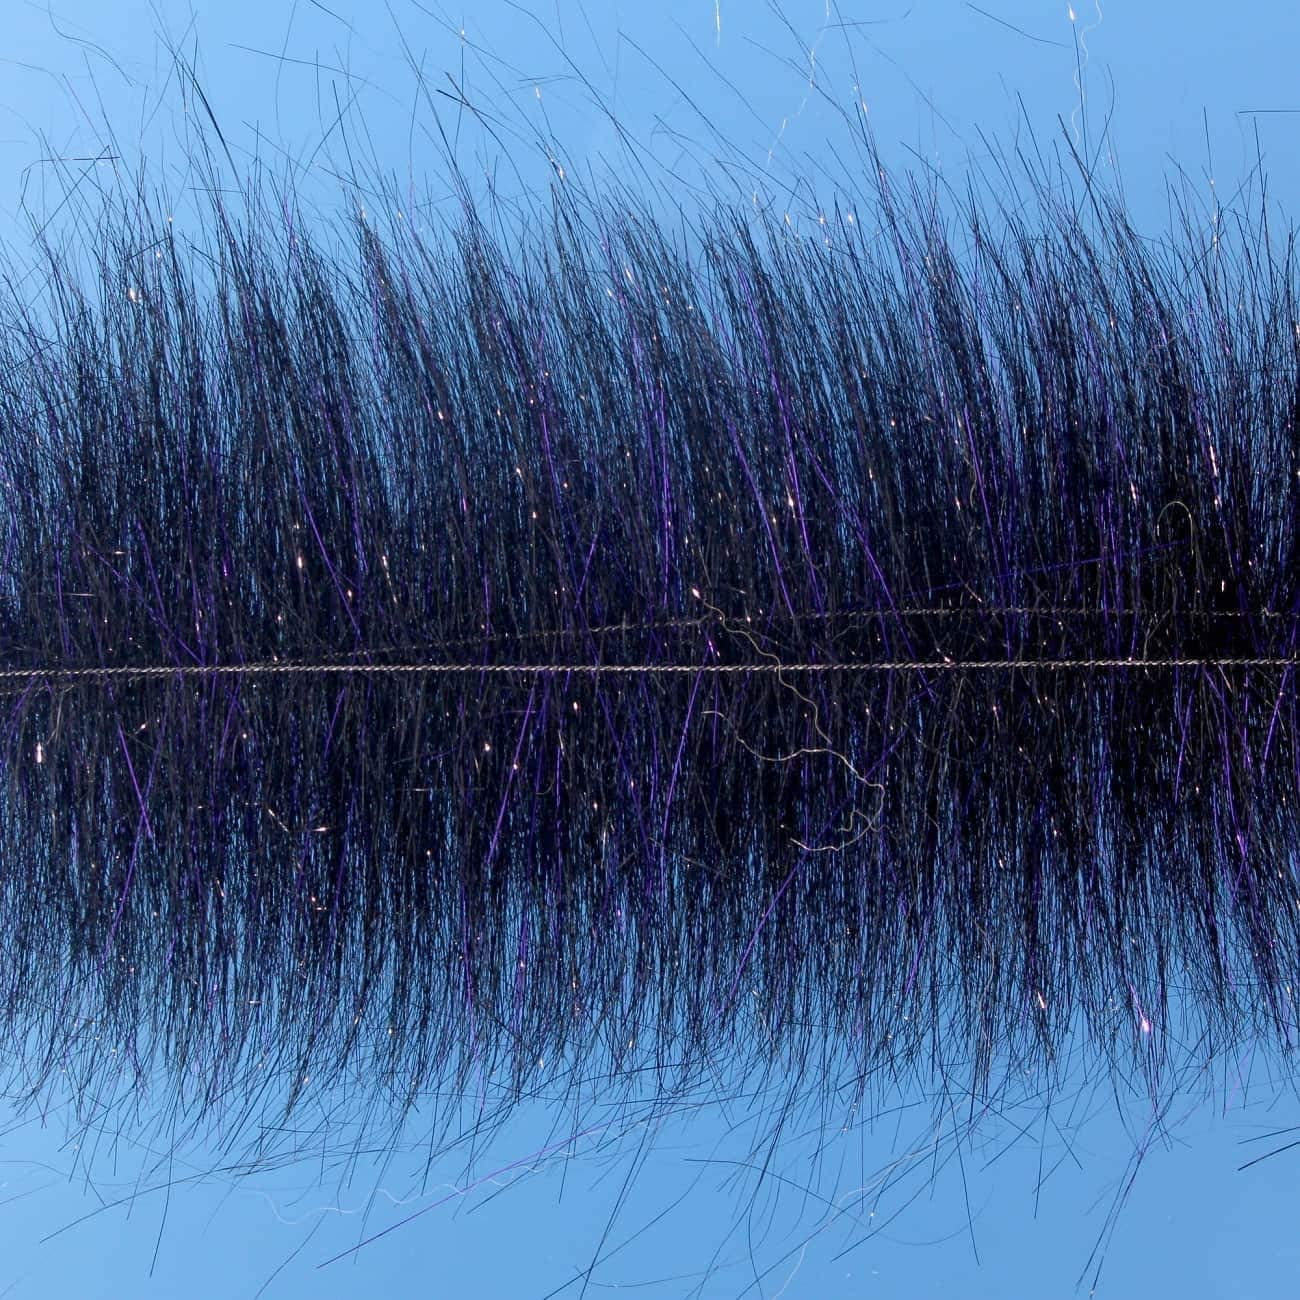 EP SPARKLE BRUSH HOLOGRAPHIC BLUE ENRICO PUGLISI  NEW FLY TYING DUBBING MATERIAL